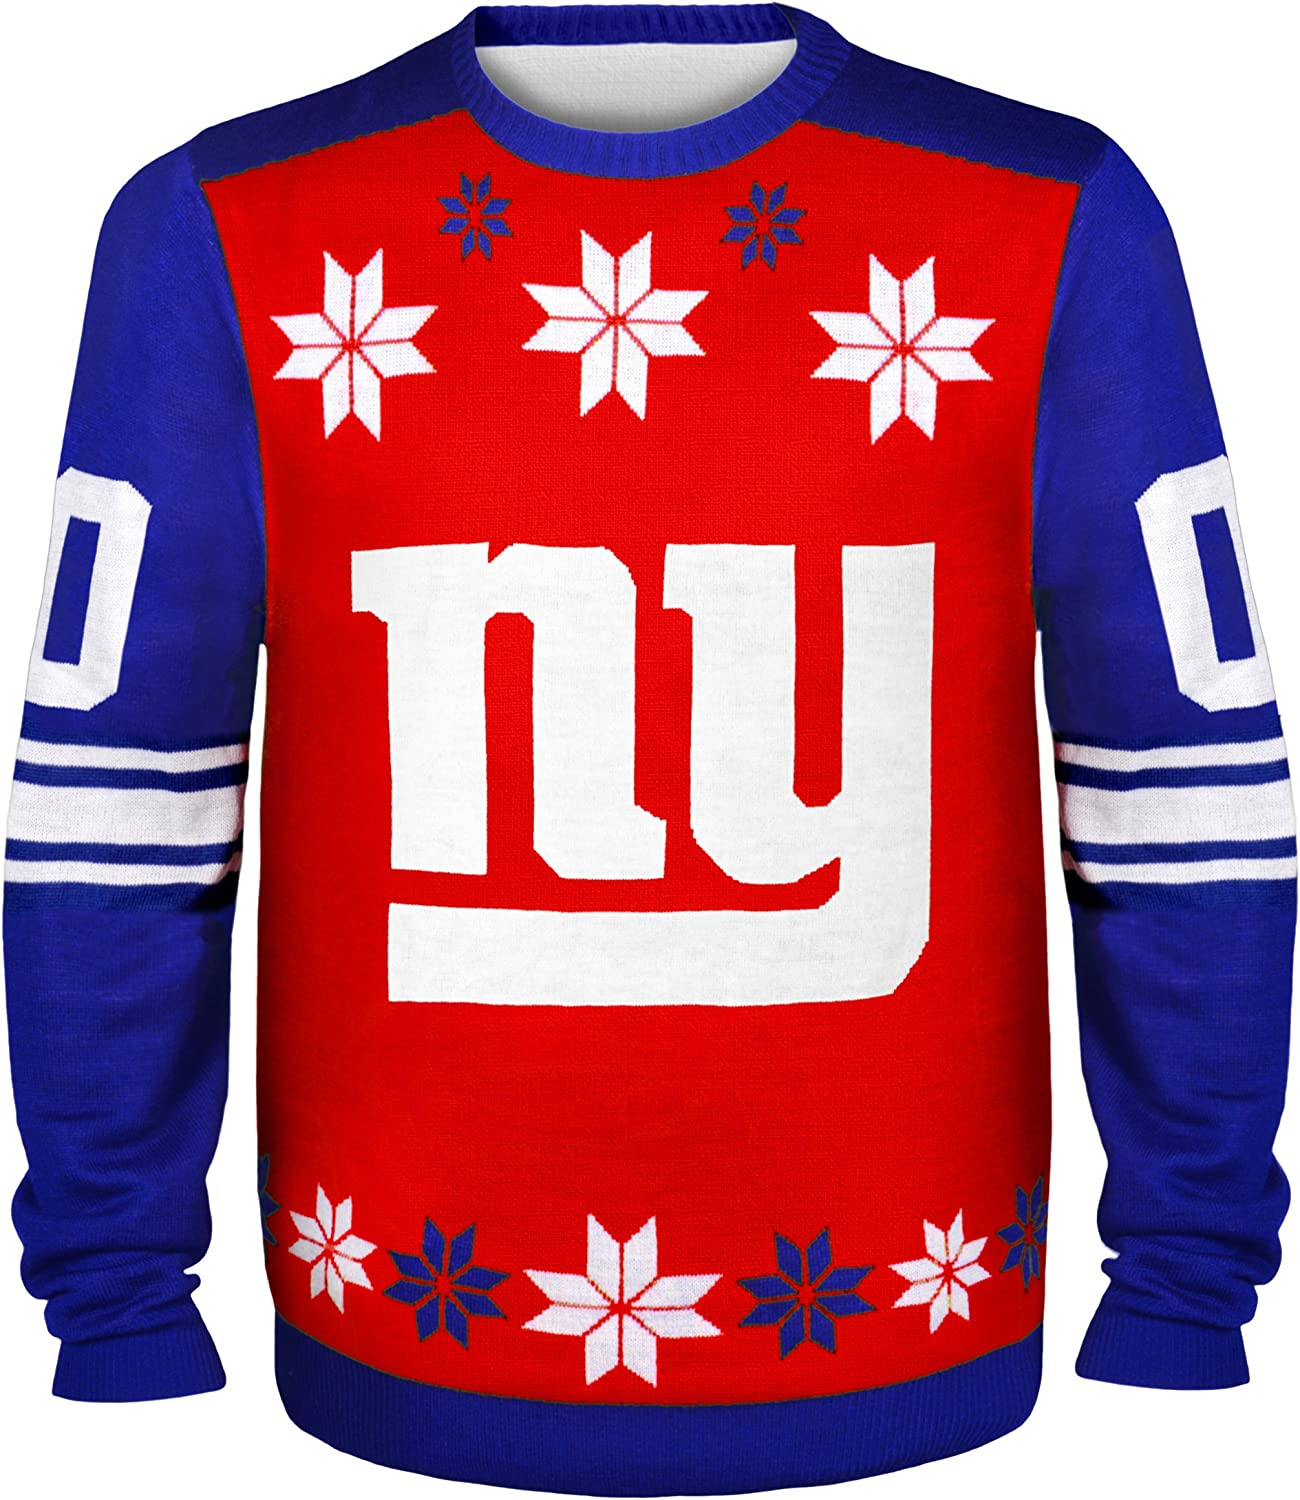 NFL New York Giants JERSEY Ugly Sweater